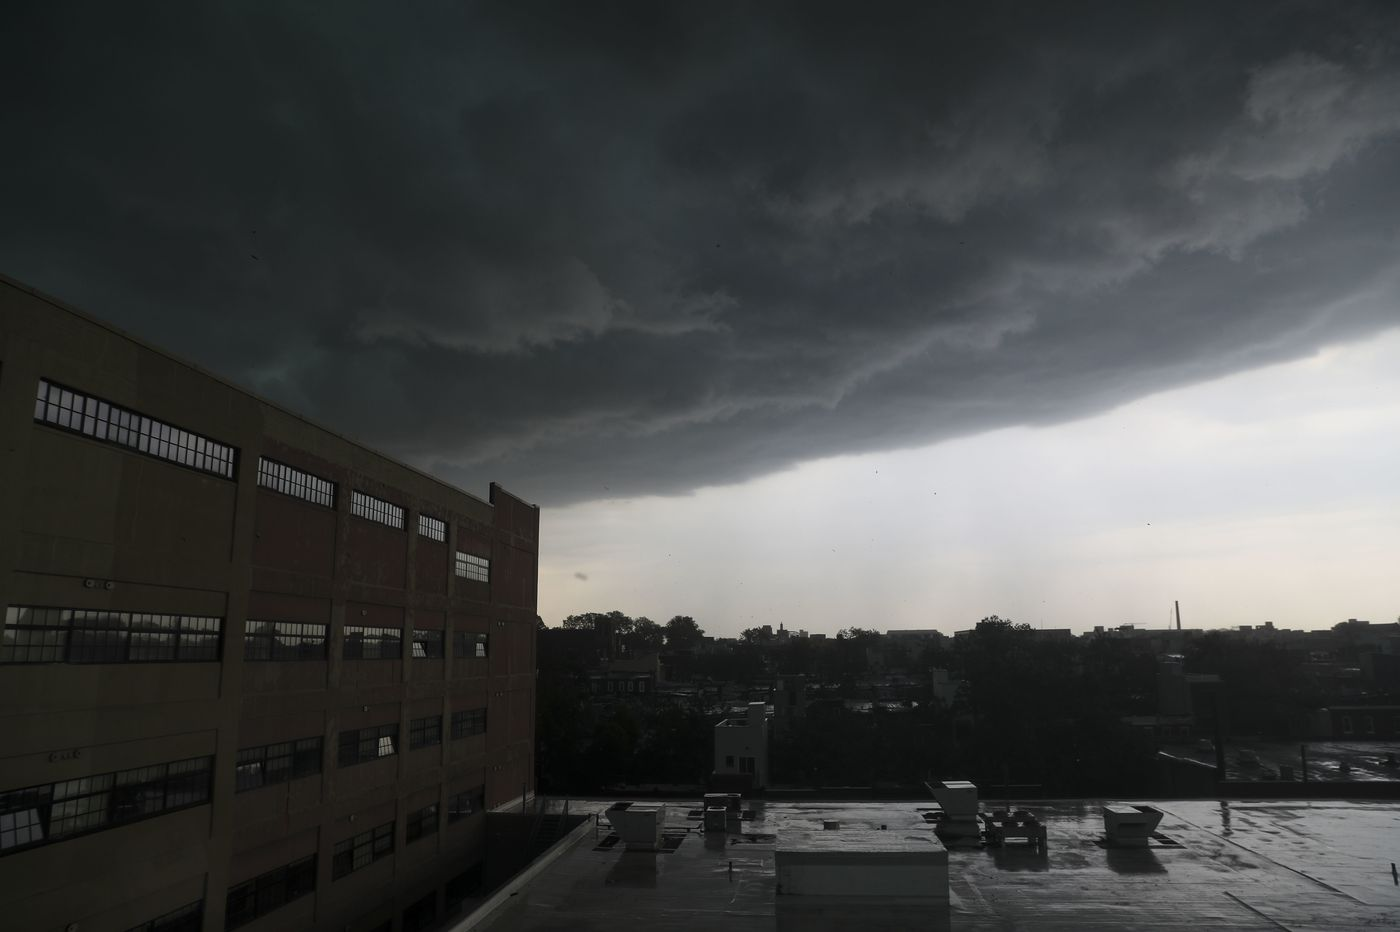 Philly severe storm prompts tornado warning; derecho kills at least 3 in suburbs